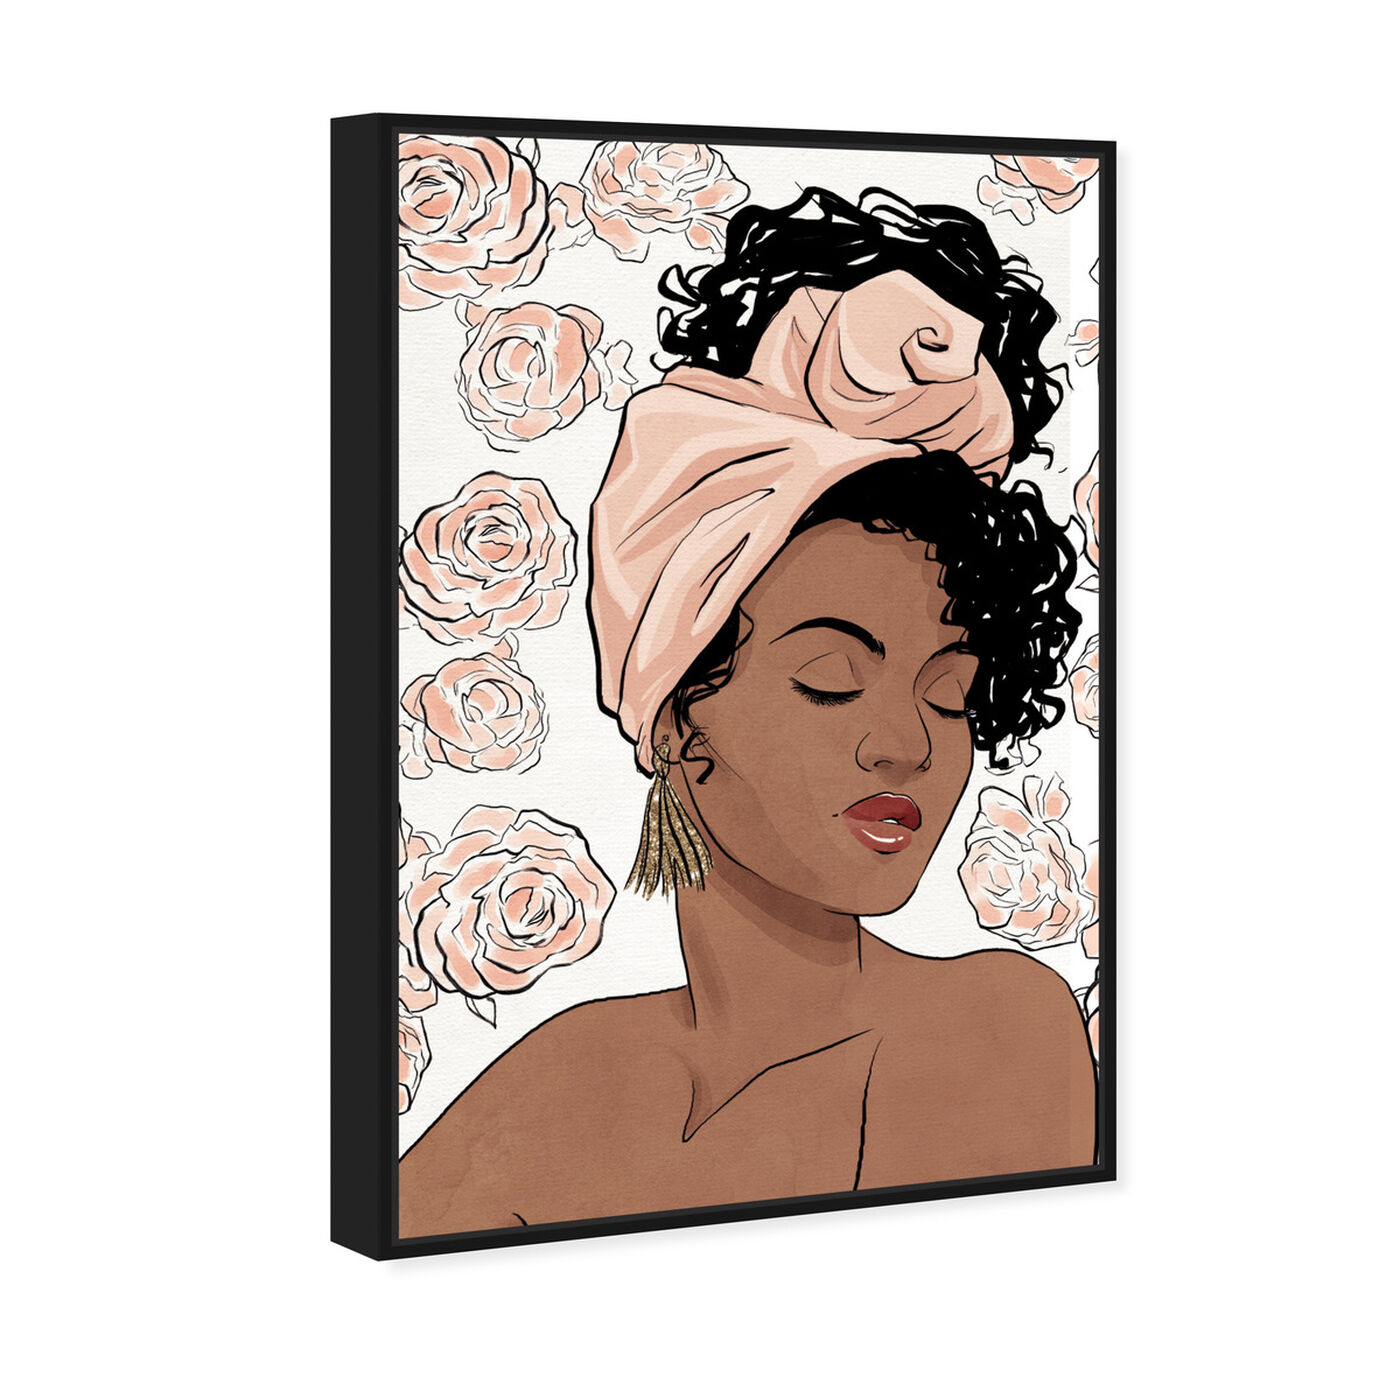 Angled view of Flower Blush Girl featuring fashion and glam and portraits art.